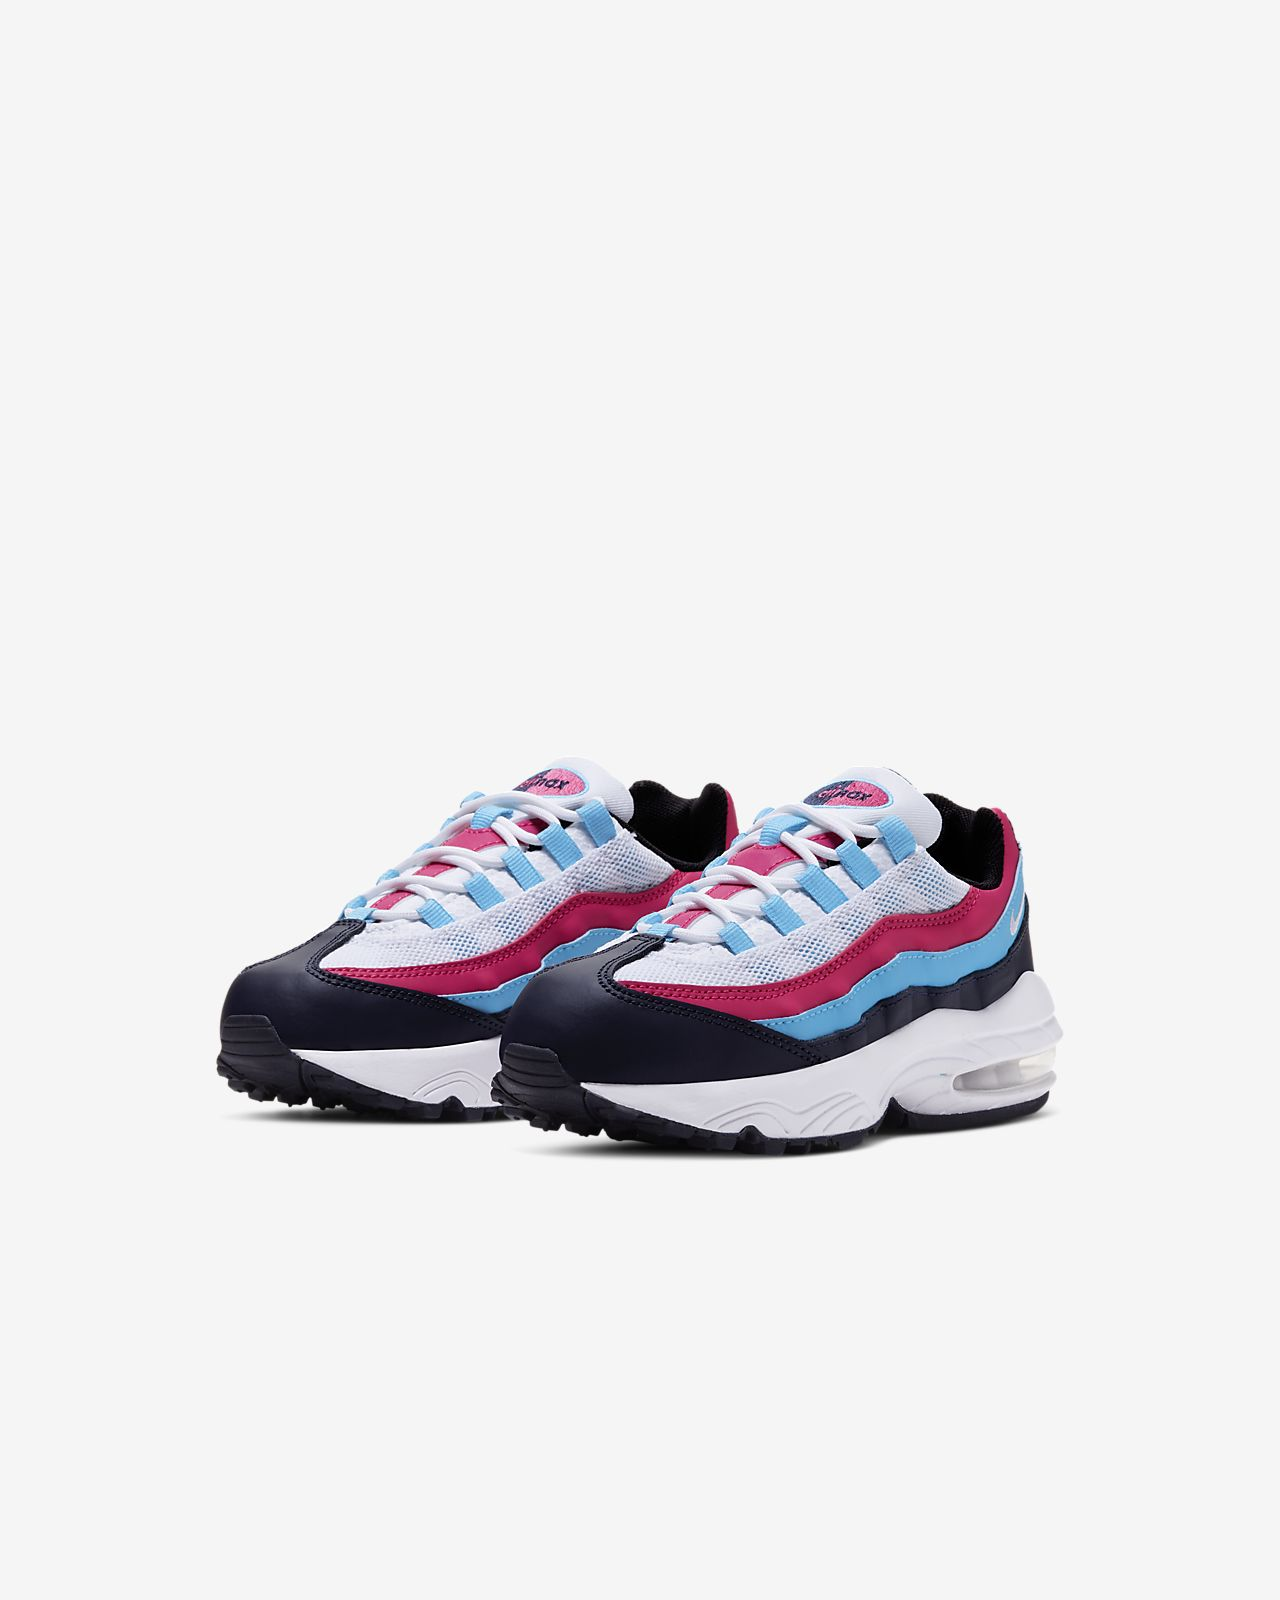 NIKE AIR MAX /'95 PS KID/'S SHOES SIZE 3Y NEW 905461 104